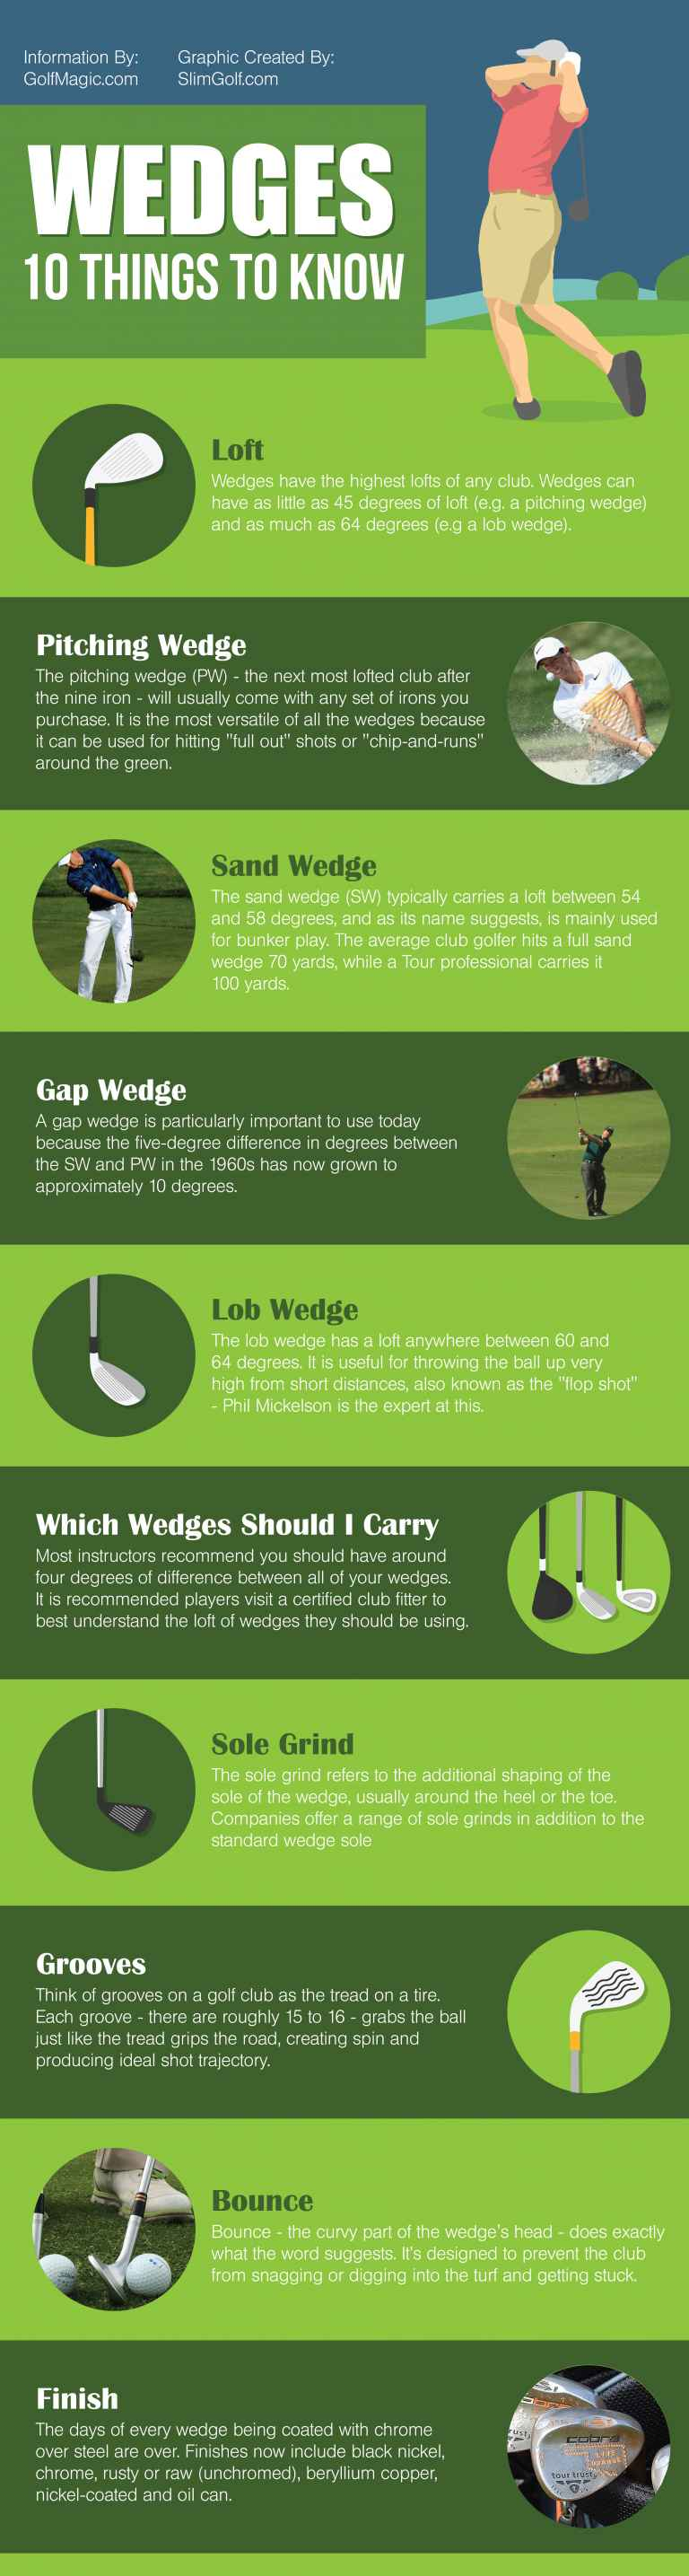 Wedges: 10 things to know